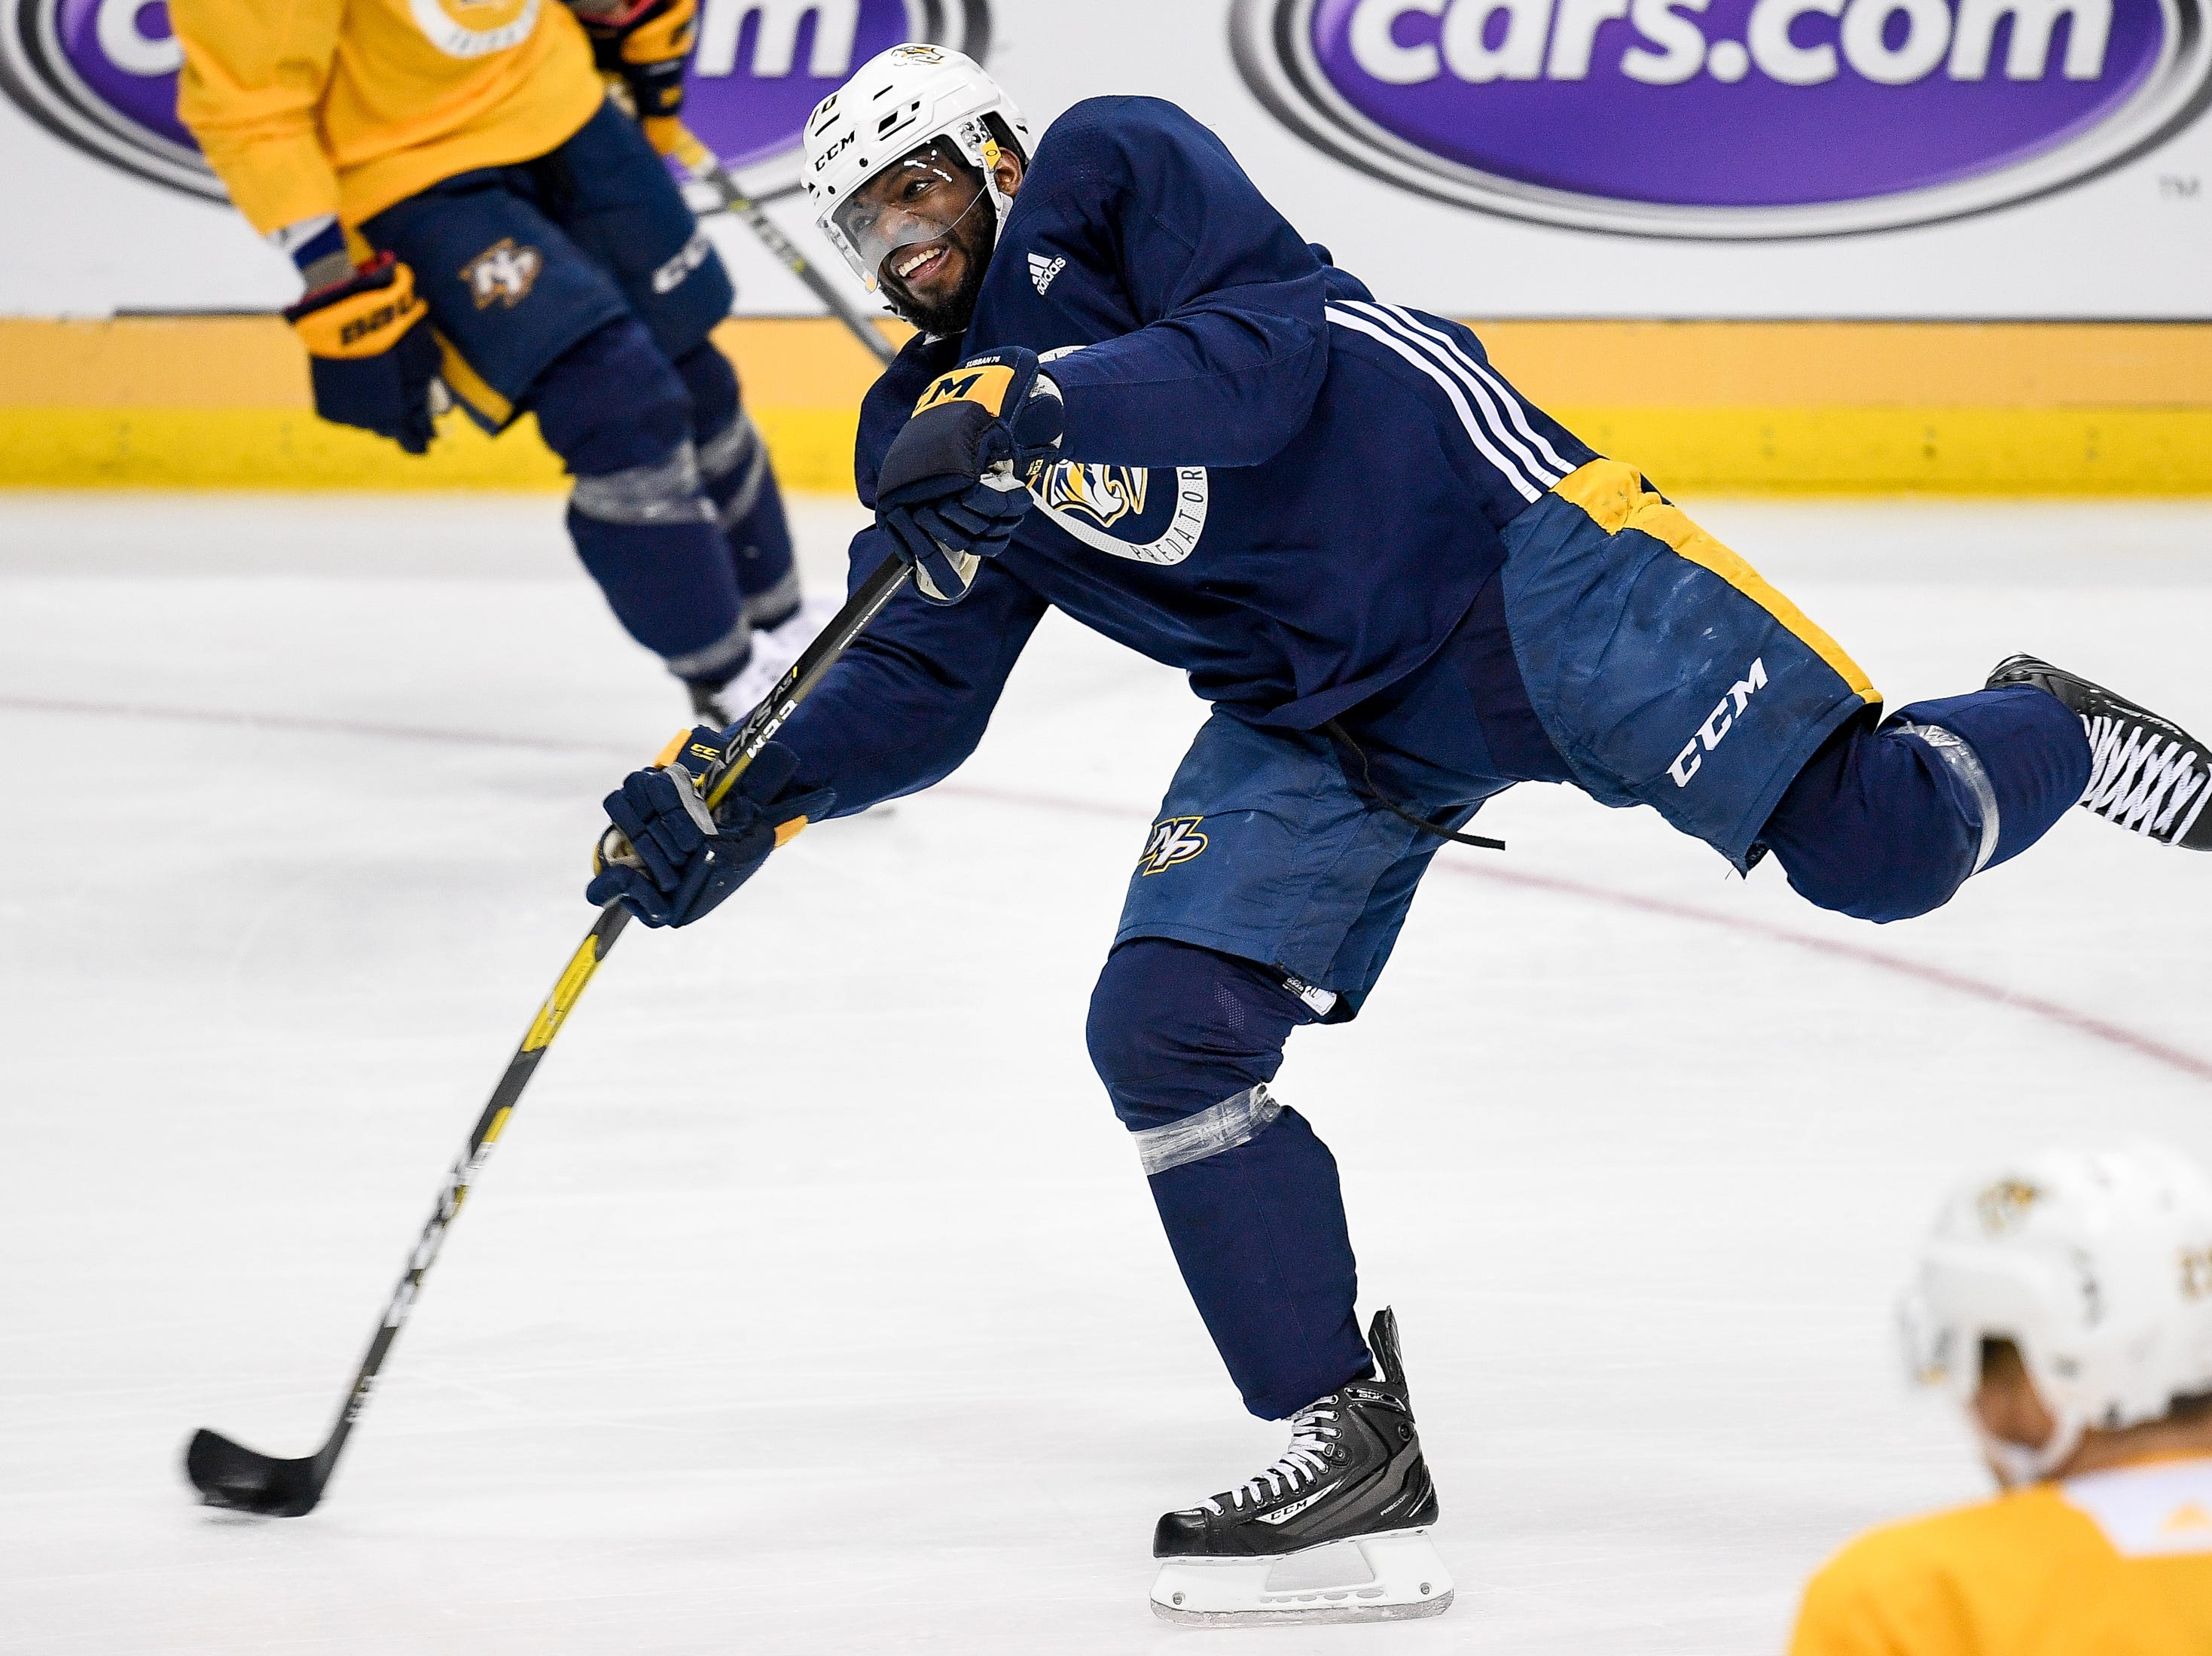 Nashville Predators defenseman P.K. Subban (76) shoots during practice before the divisional semifinal game against the Dallas Stars at the American Airlines Center in Dallas, Texas, Monday, April 22, 2019.